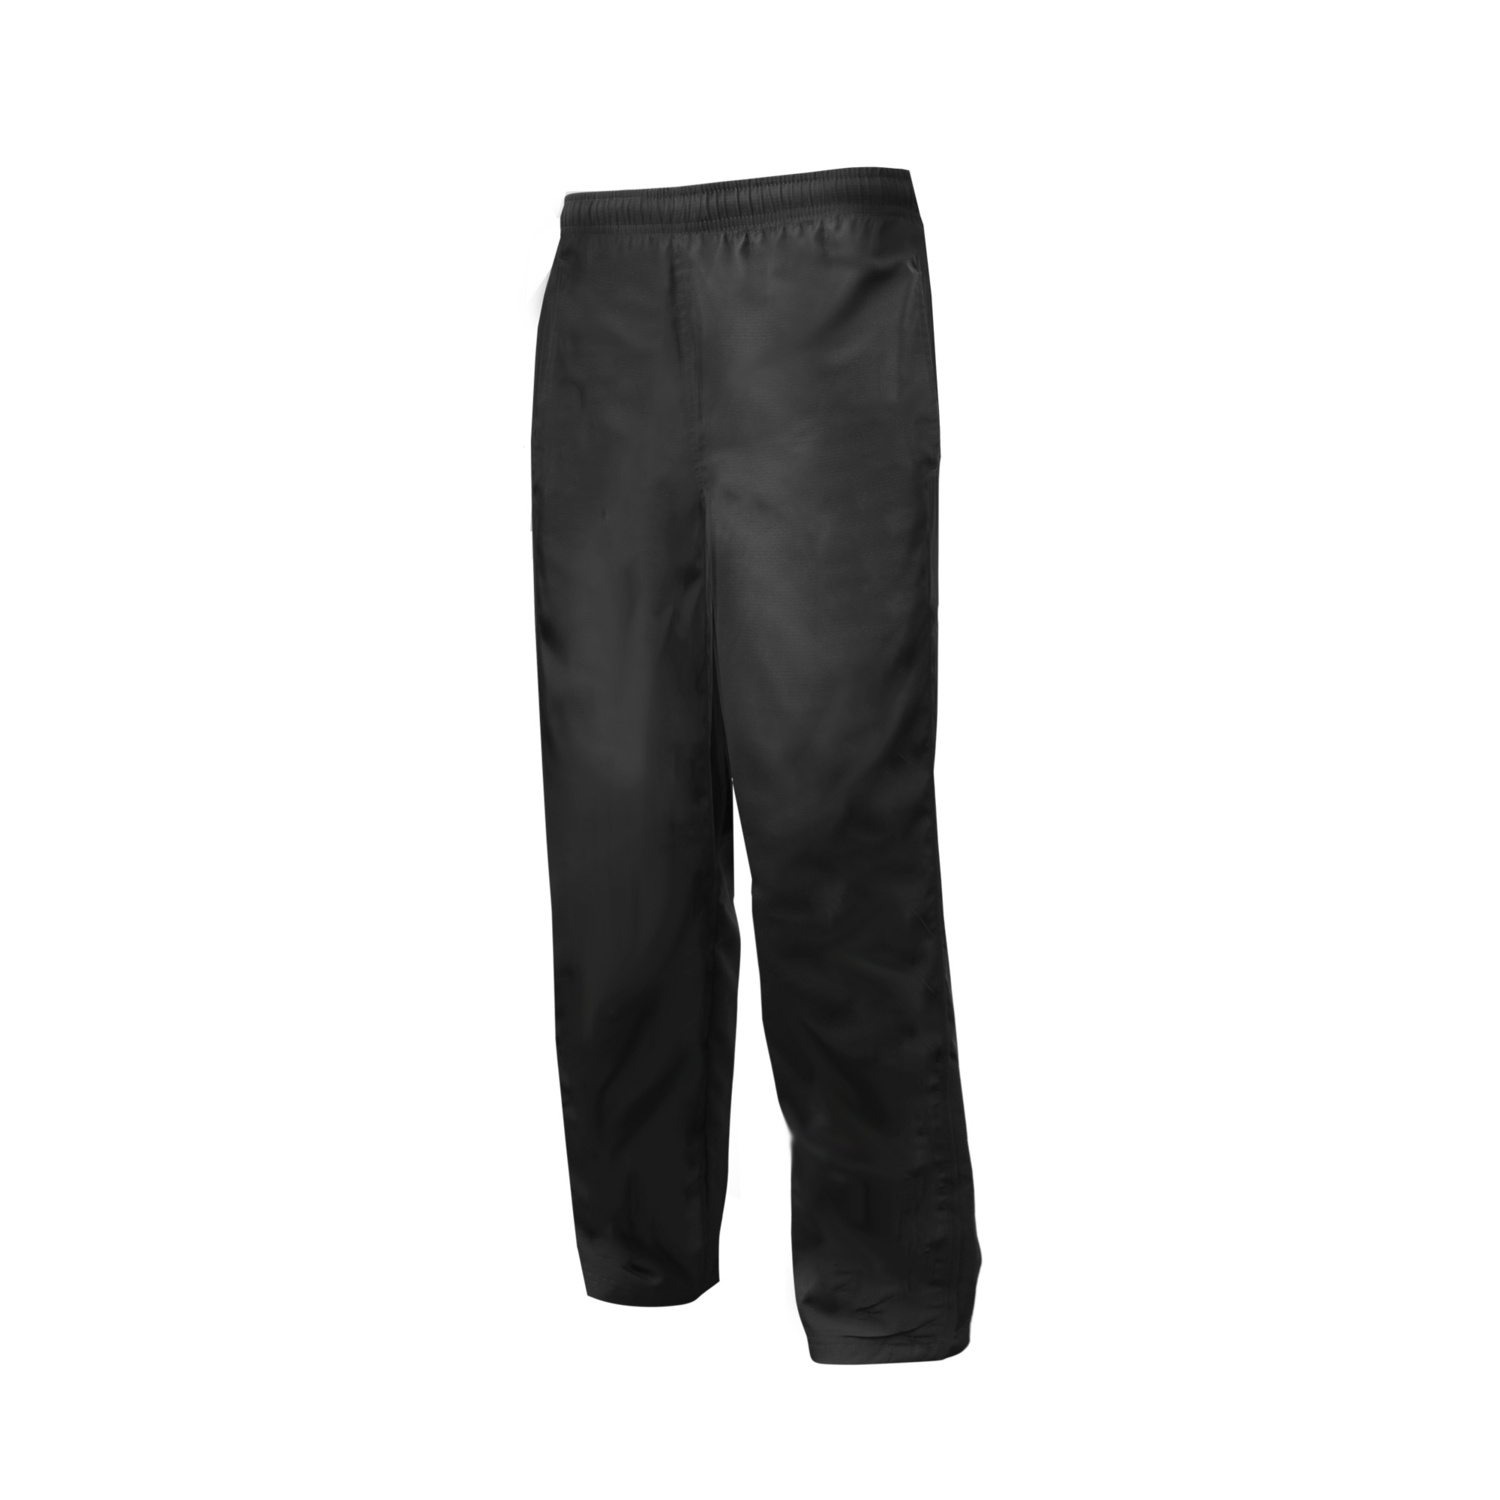 Training trousers